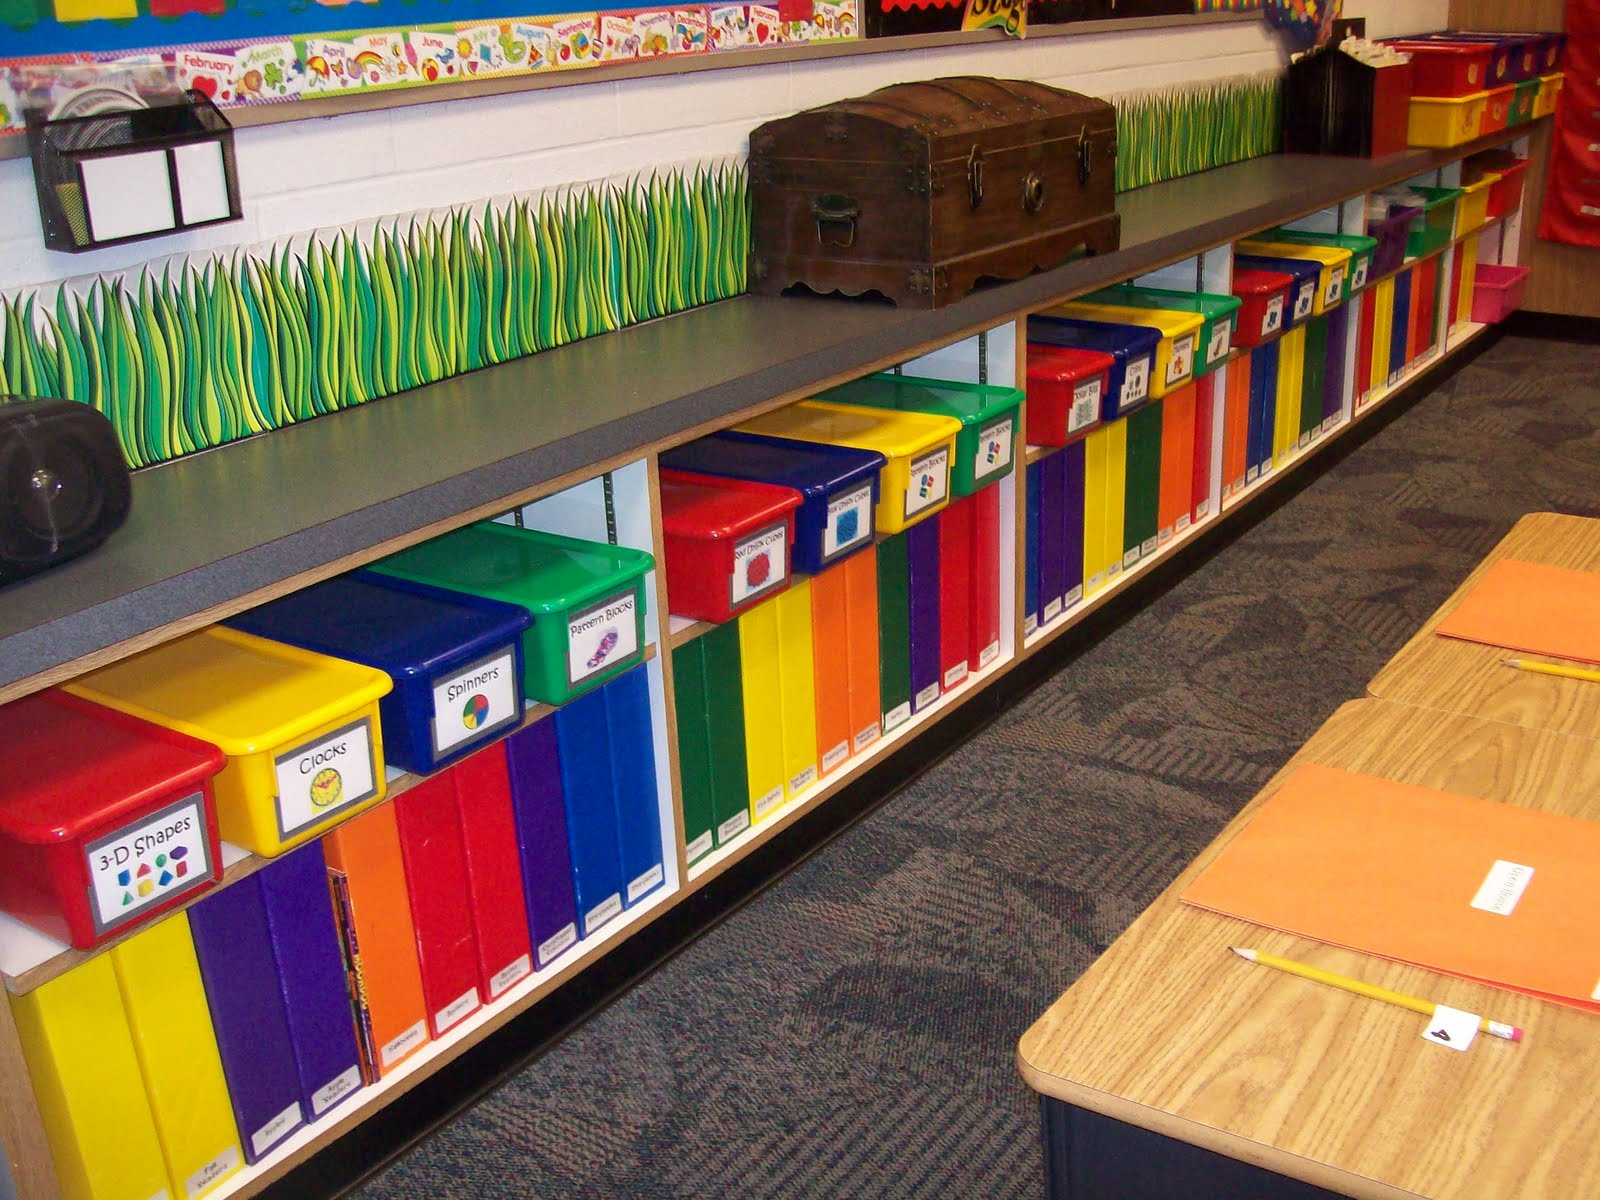 Classroom Organisation Ideas : Teacher sol middle school offers classroom